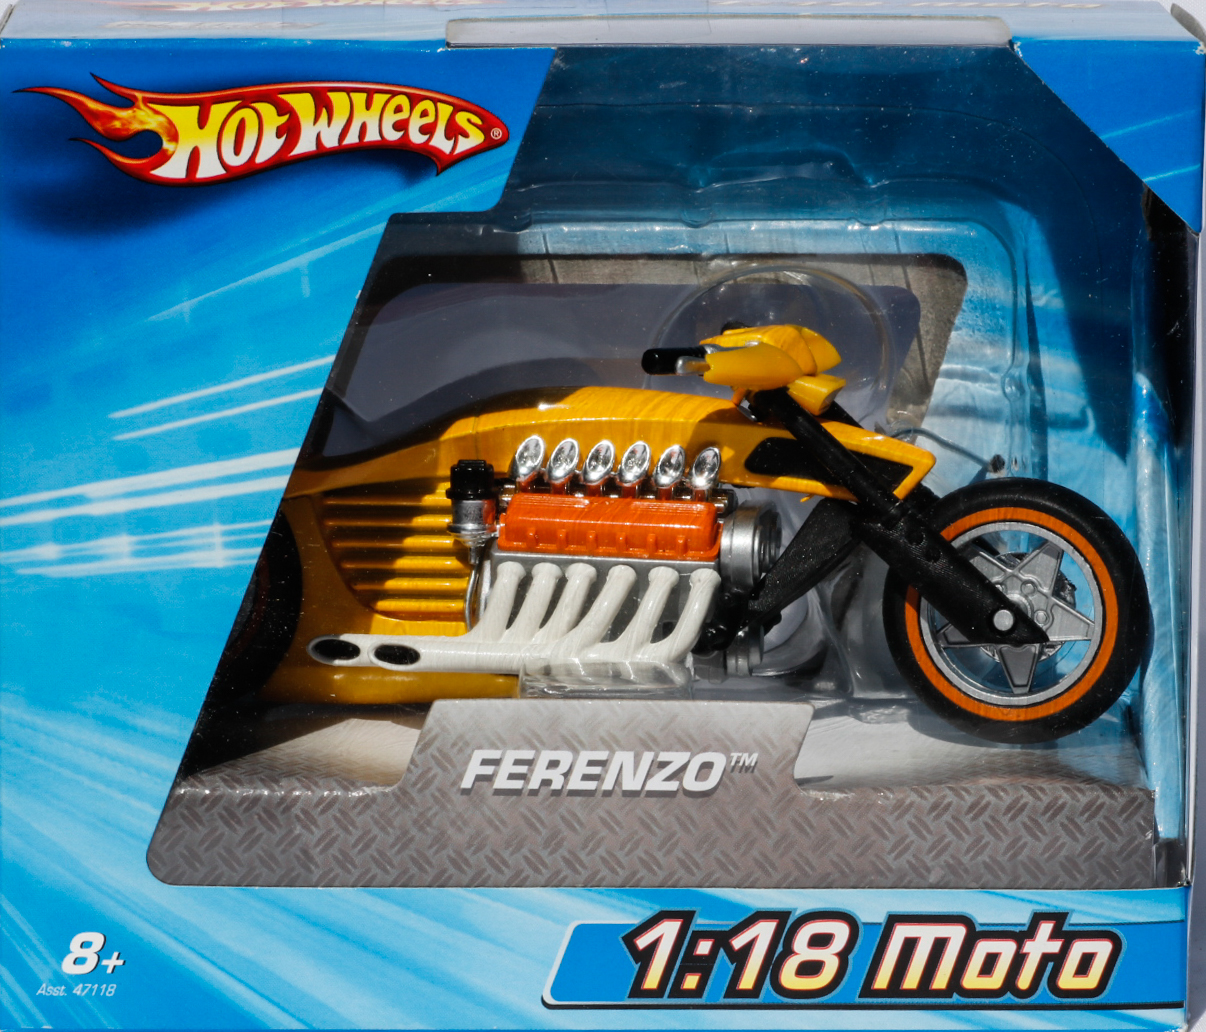 Hot Wheels 1-18 Moto Ferenzo